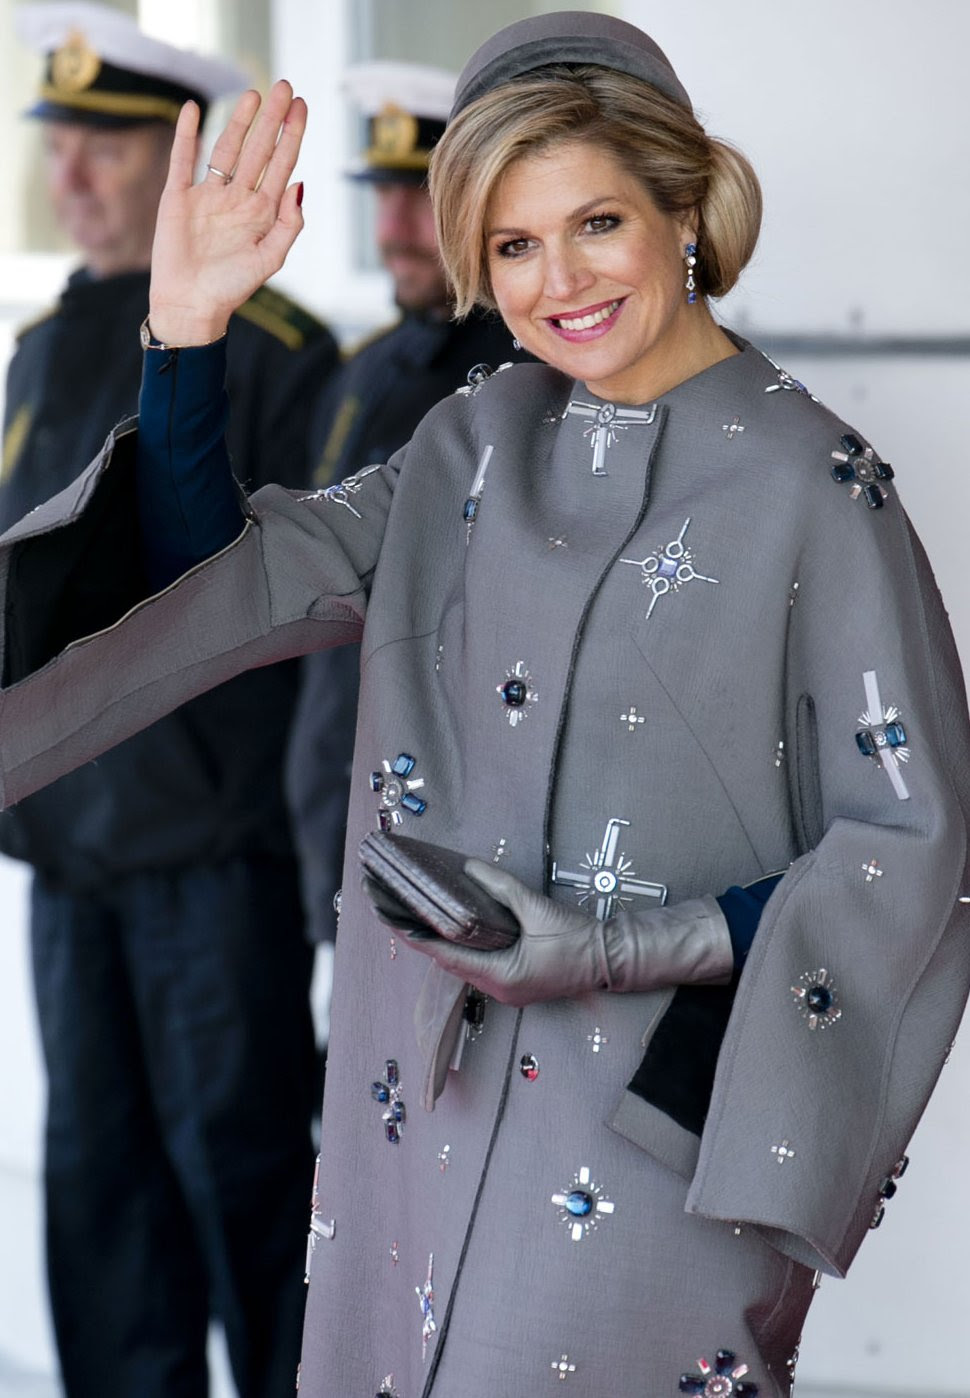 http://www.chapterfifty.com/wp-content/uploads/2016/01/Chapter-Fifty-Queen-Maxima-Dress-Claes-Iversen-grey-sequined-coat.jpg